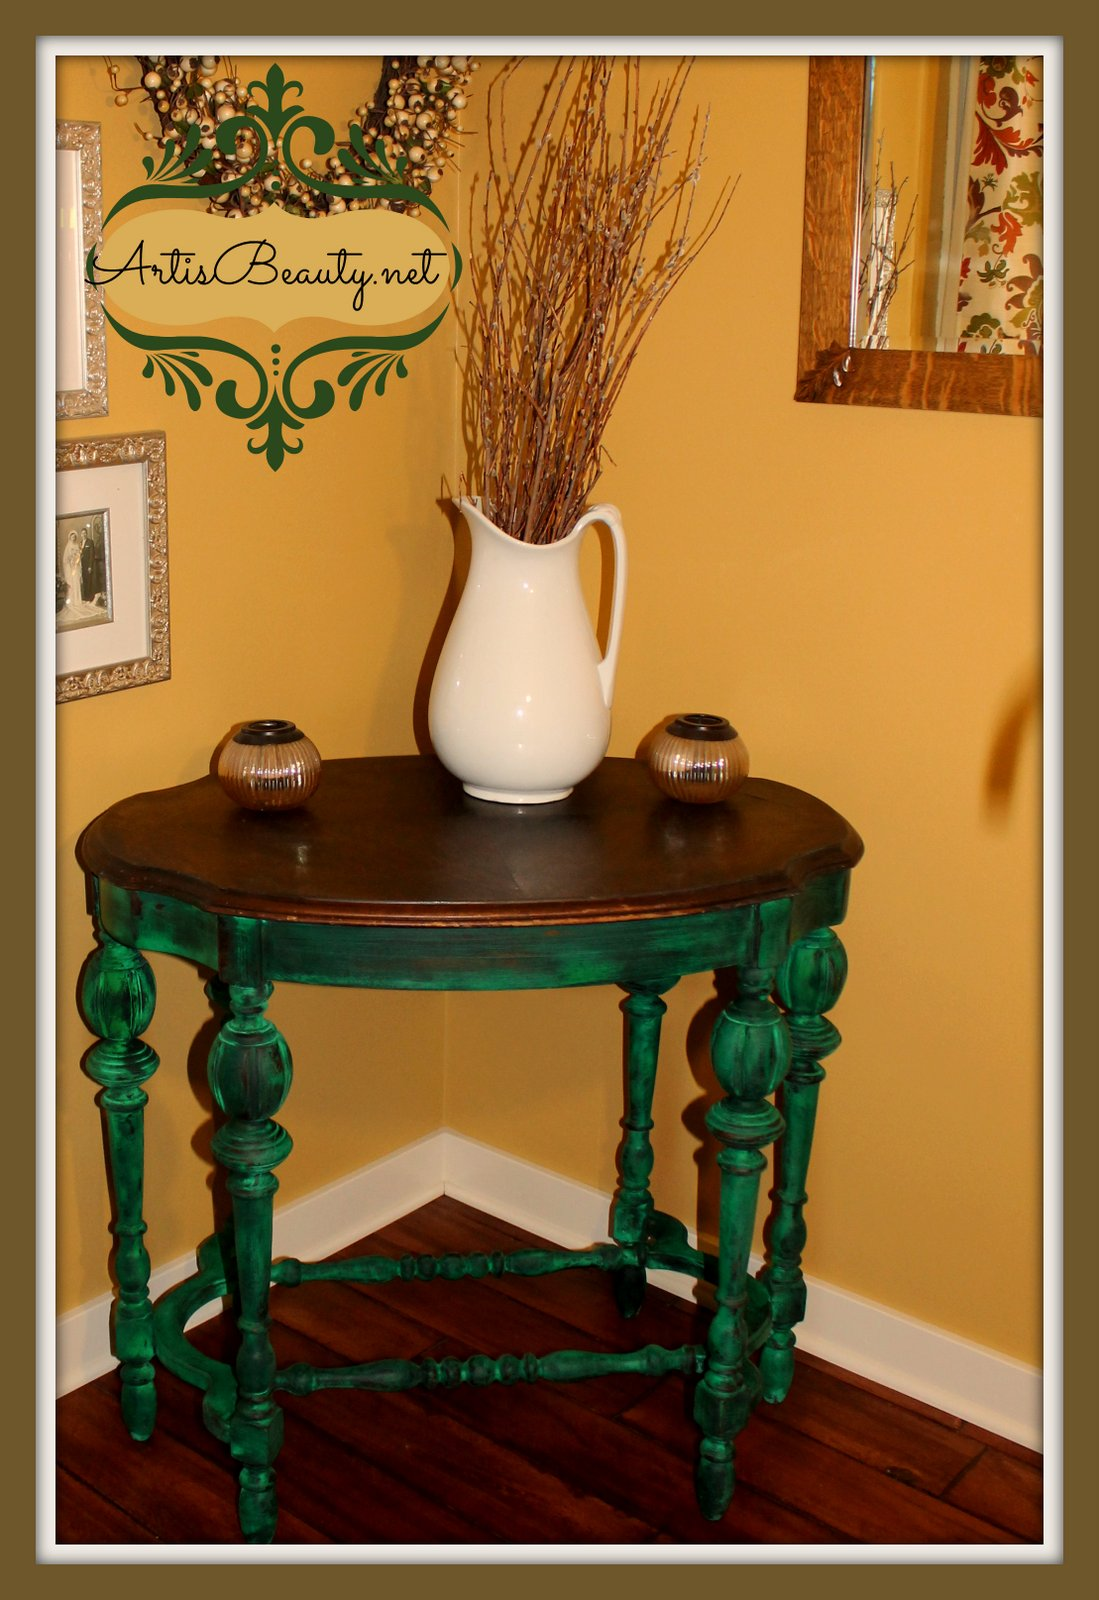 art beauty honor emerald isle parlor table makeover img green accent know will looking king iron weber grill umbrella end tablecloth for inch decorative dark blue nightstand bath